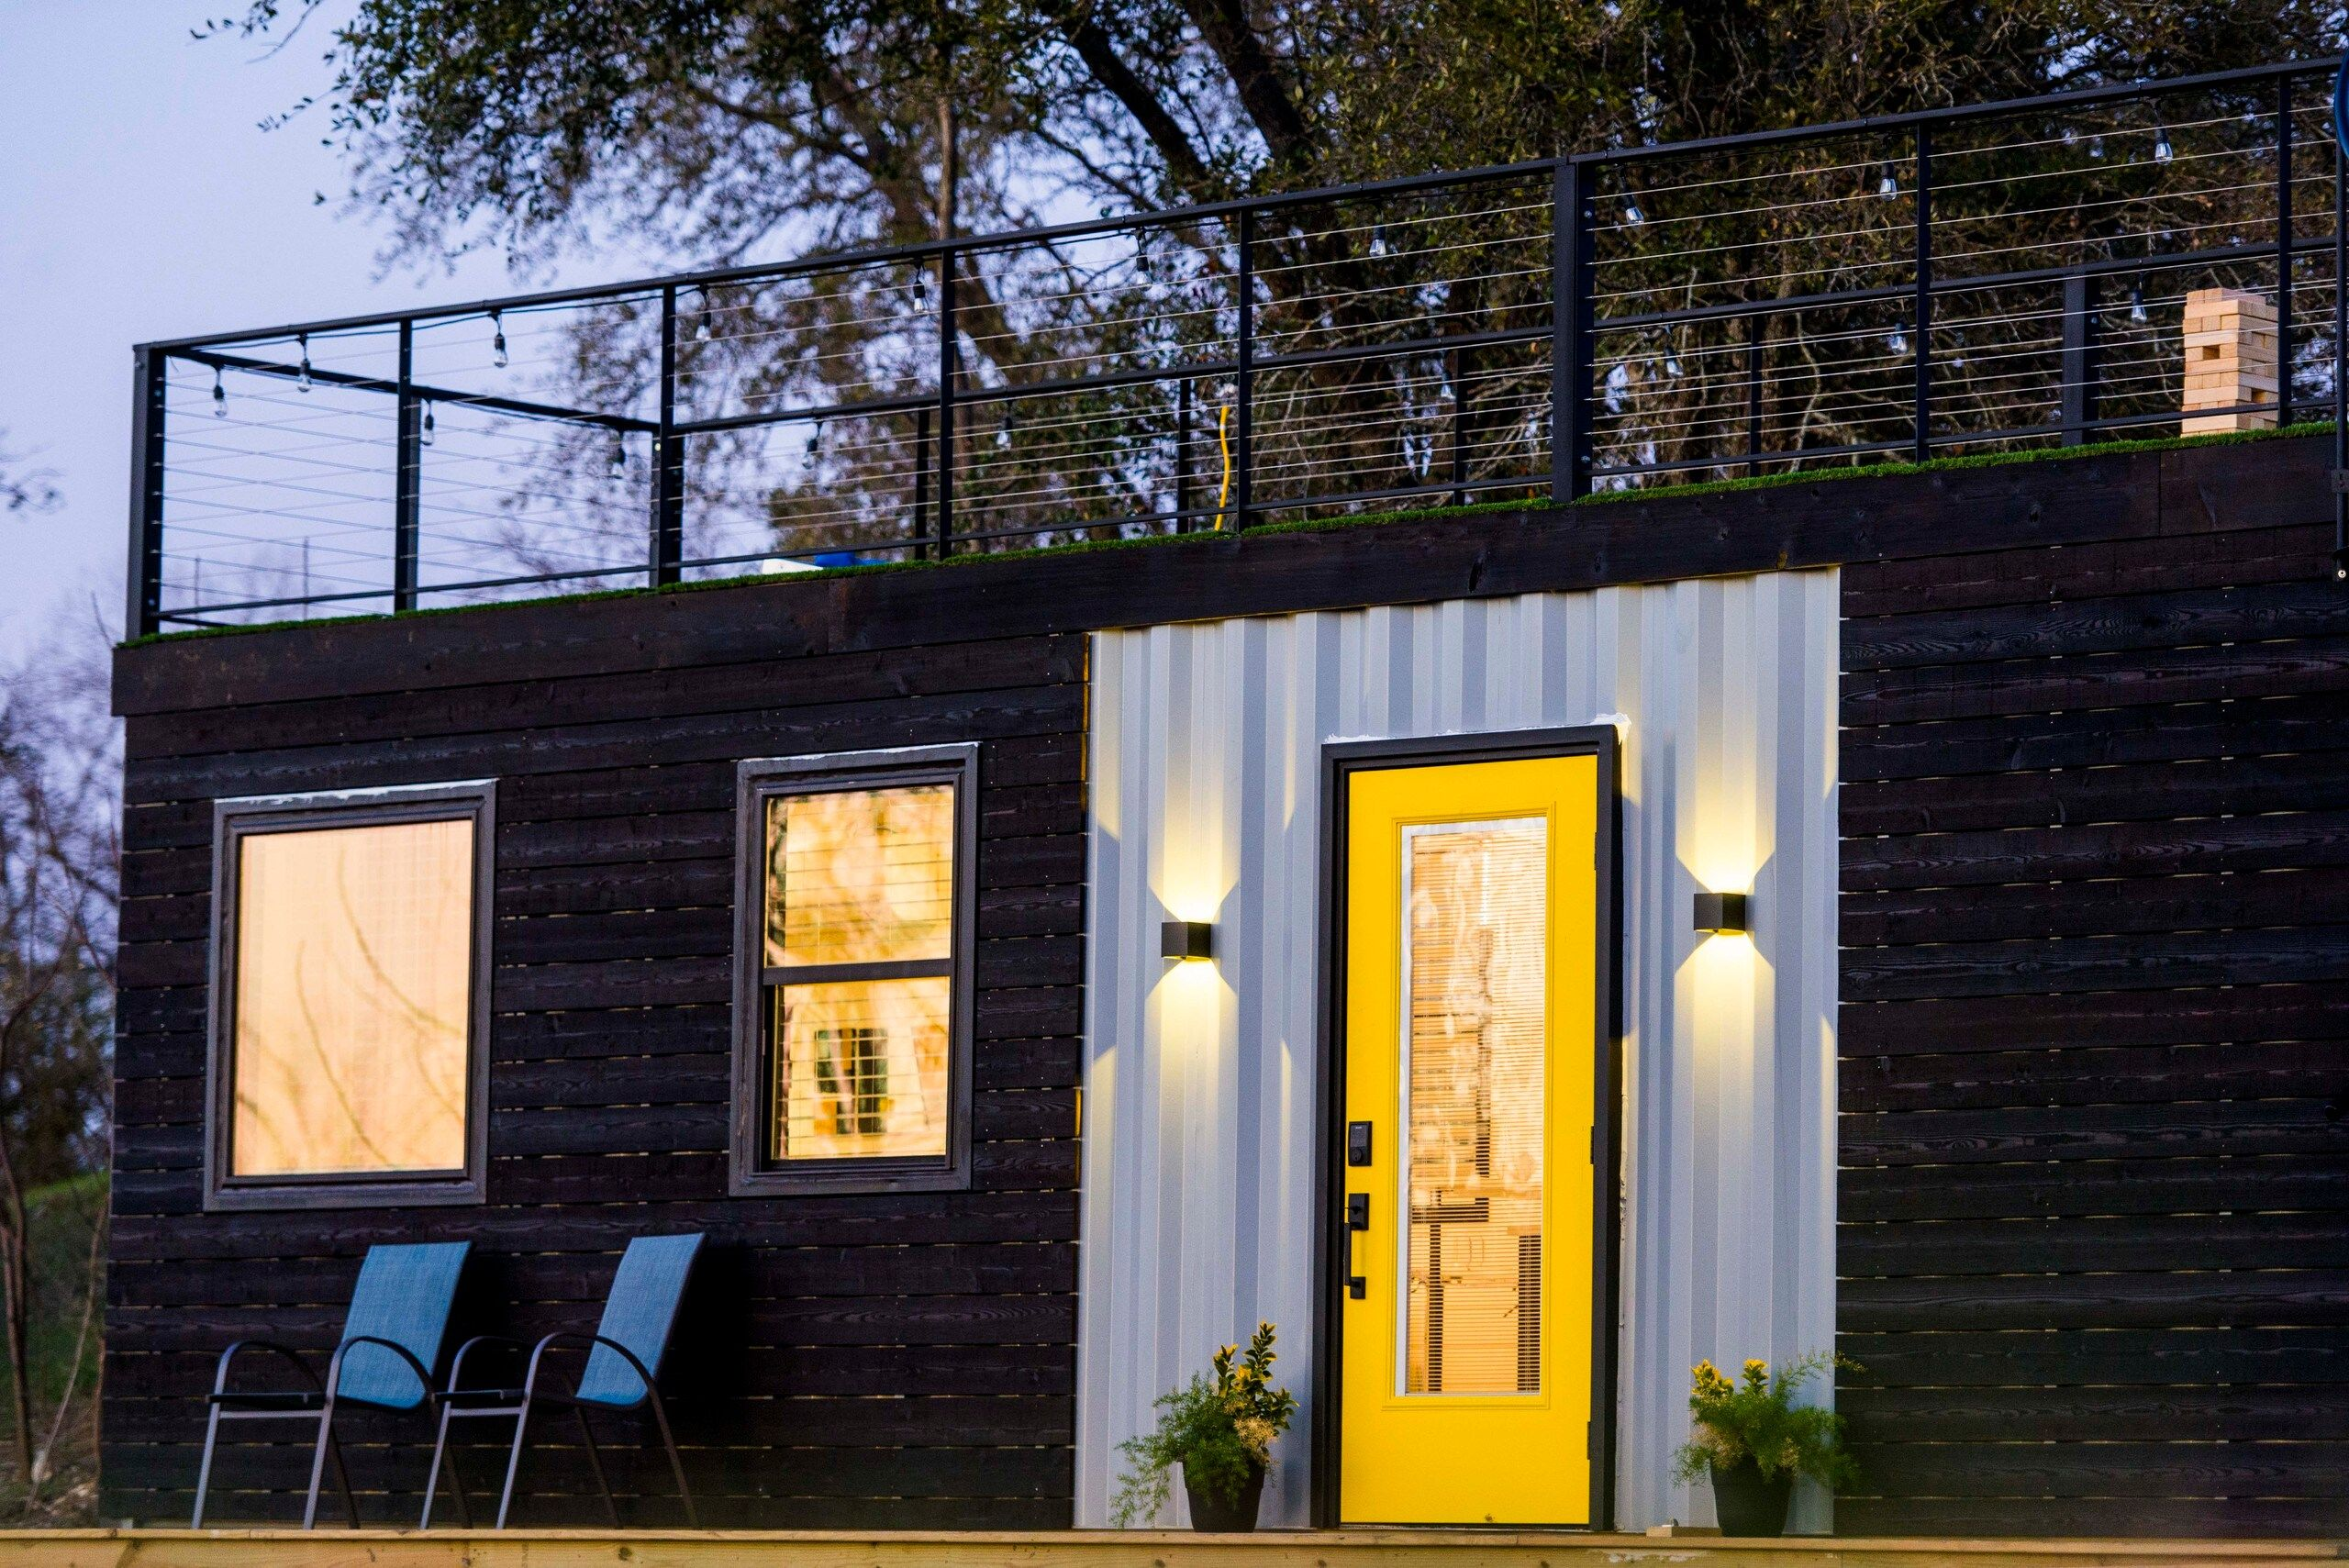 Astroturf Covered Rooftop Deck Container Home From Texas Living In A Container In 2020 Container House Container Homes Australia Tiny Houses For Rent